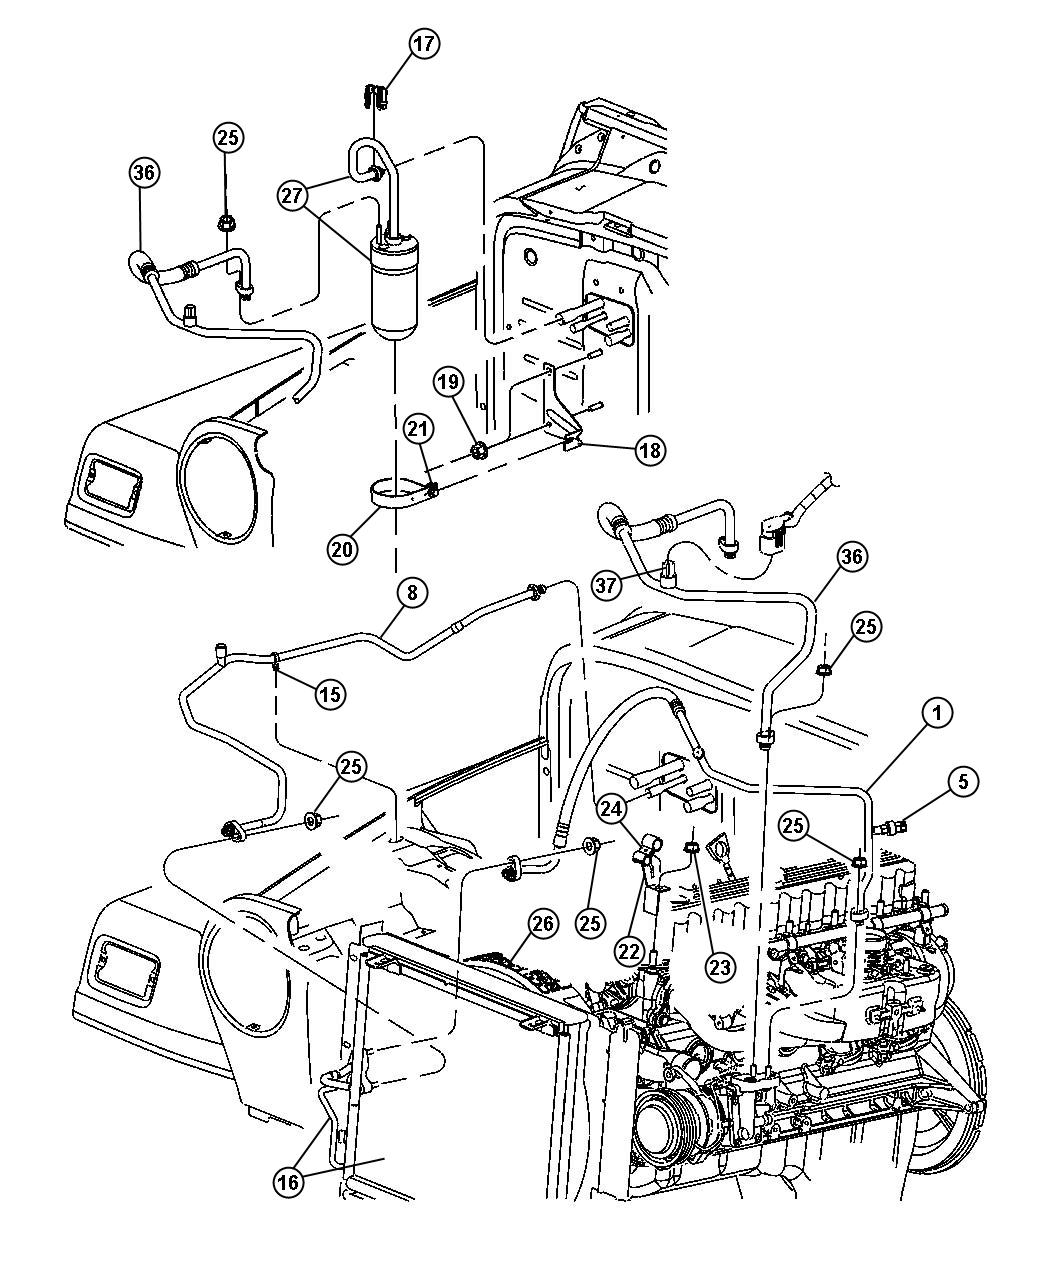 Wiring Harness Kit For A Pacifica Radio